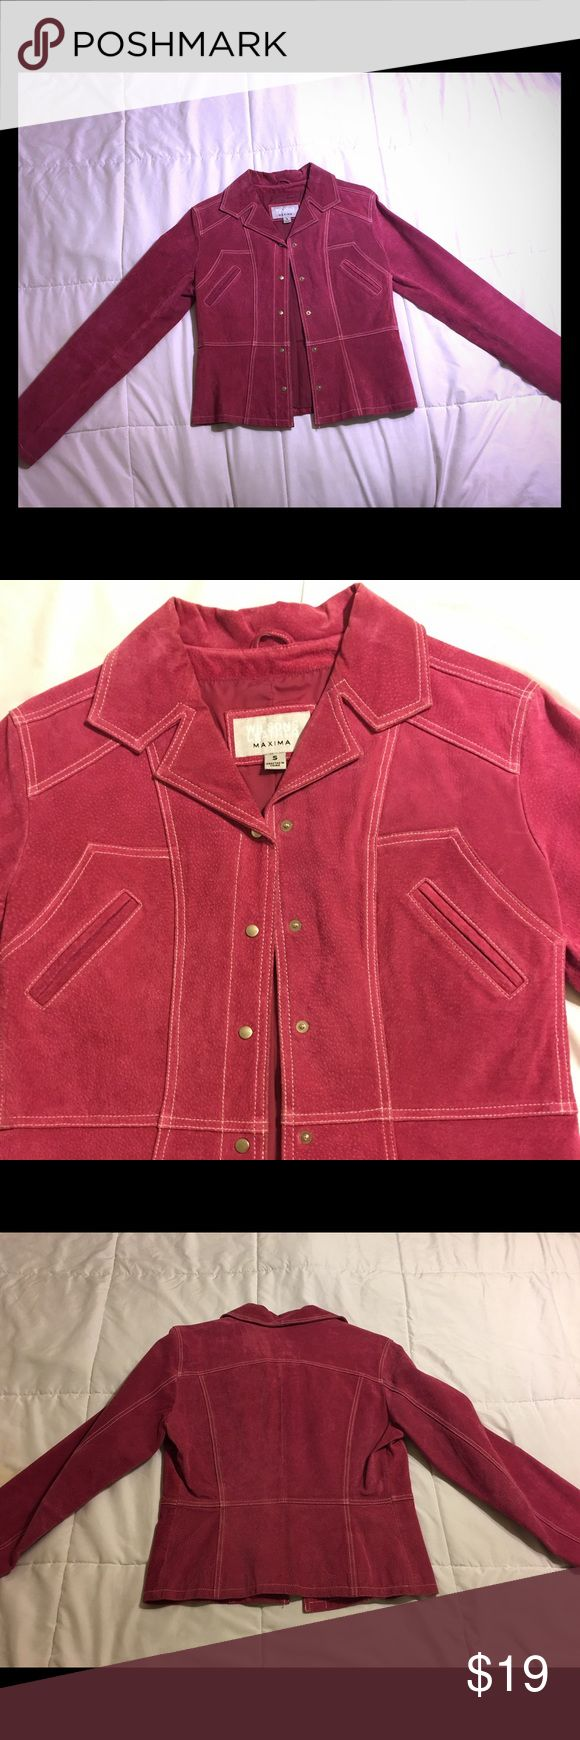 Pink leather jacket This is a Wilsons leather maxima size small, leather suede jacket in perfect condition! Wilsons Leather Jackets & Coats